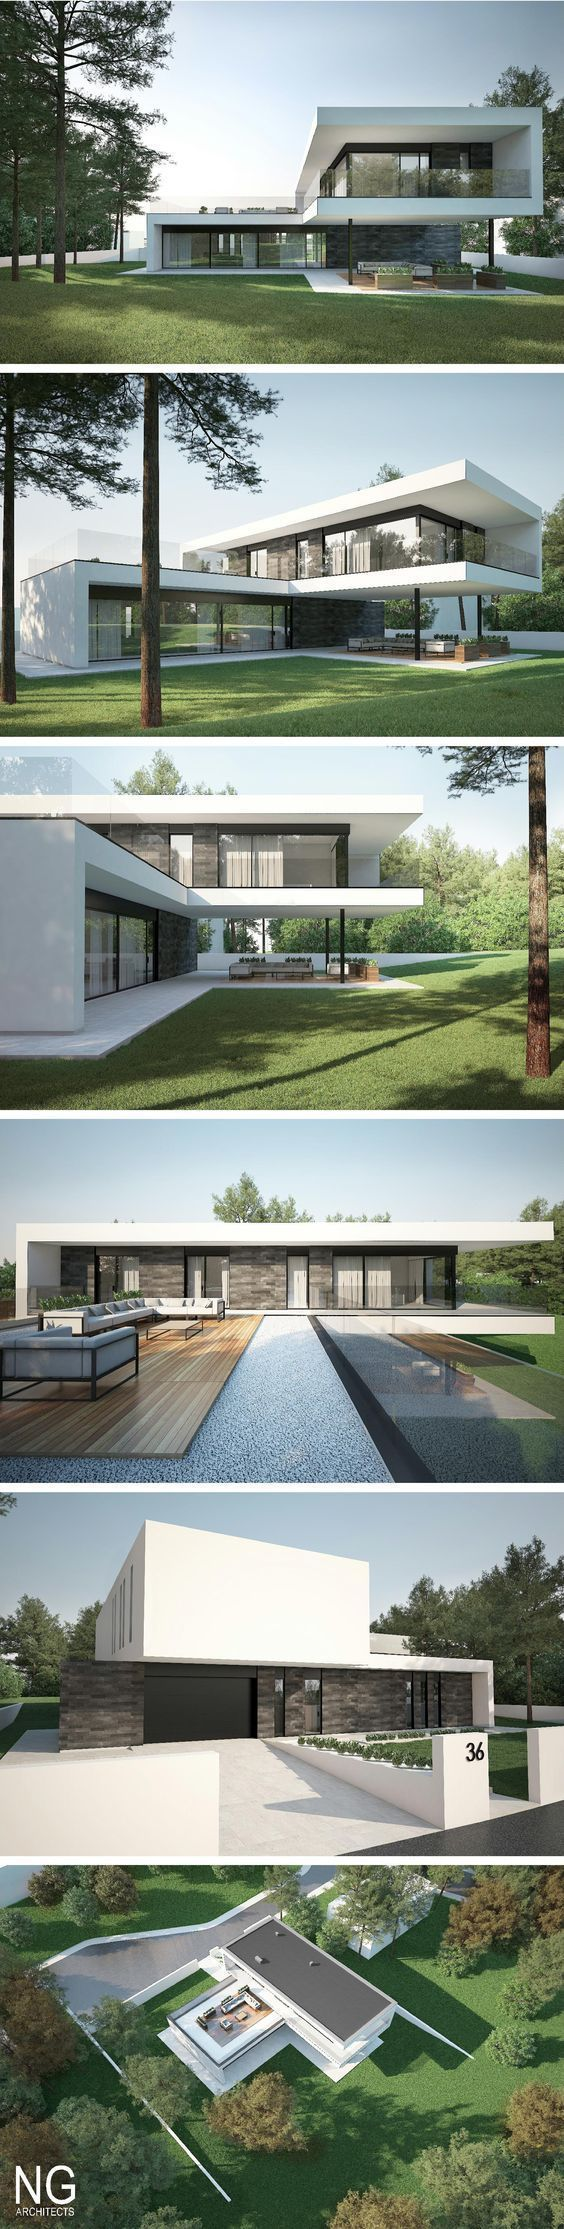 Modern House Design & Architecture : Modern house in Kaunas by NG architects www.ngarchitects.lt:…